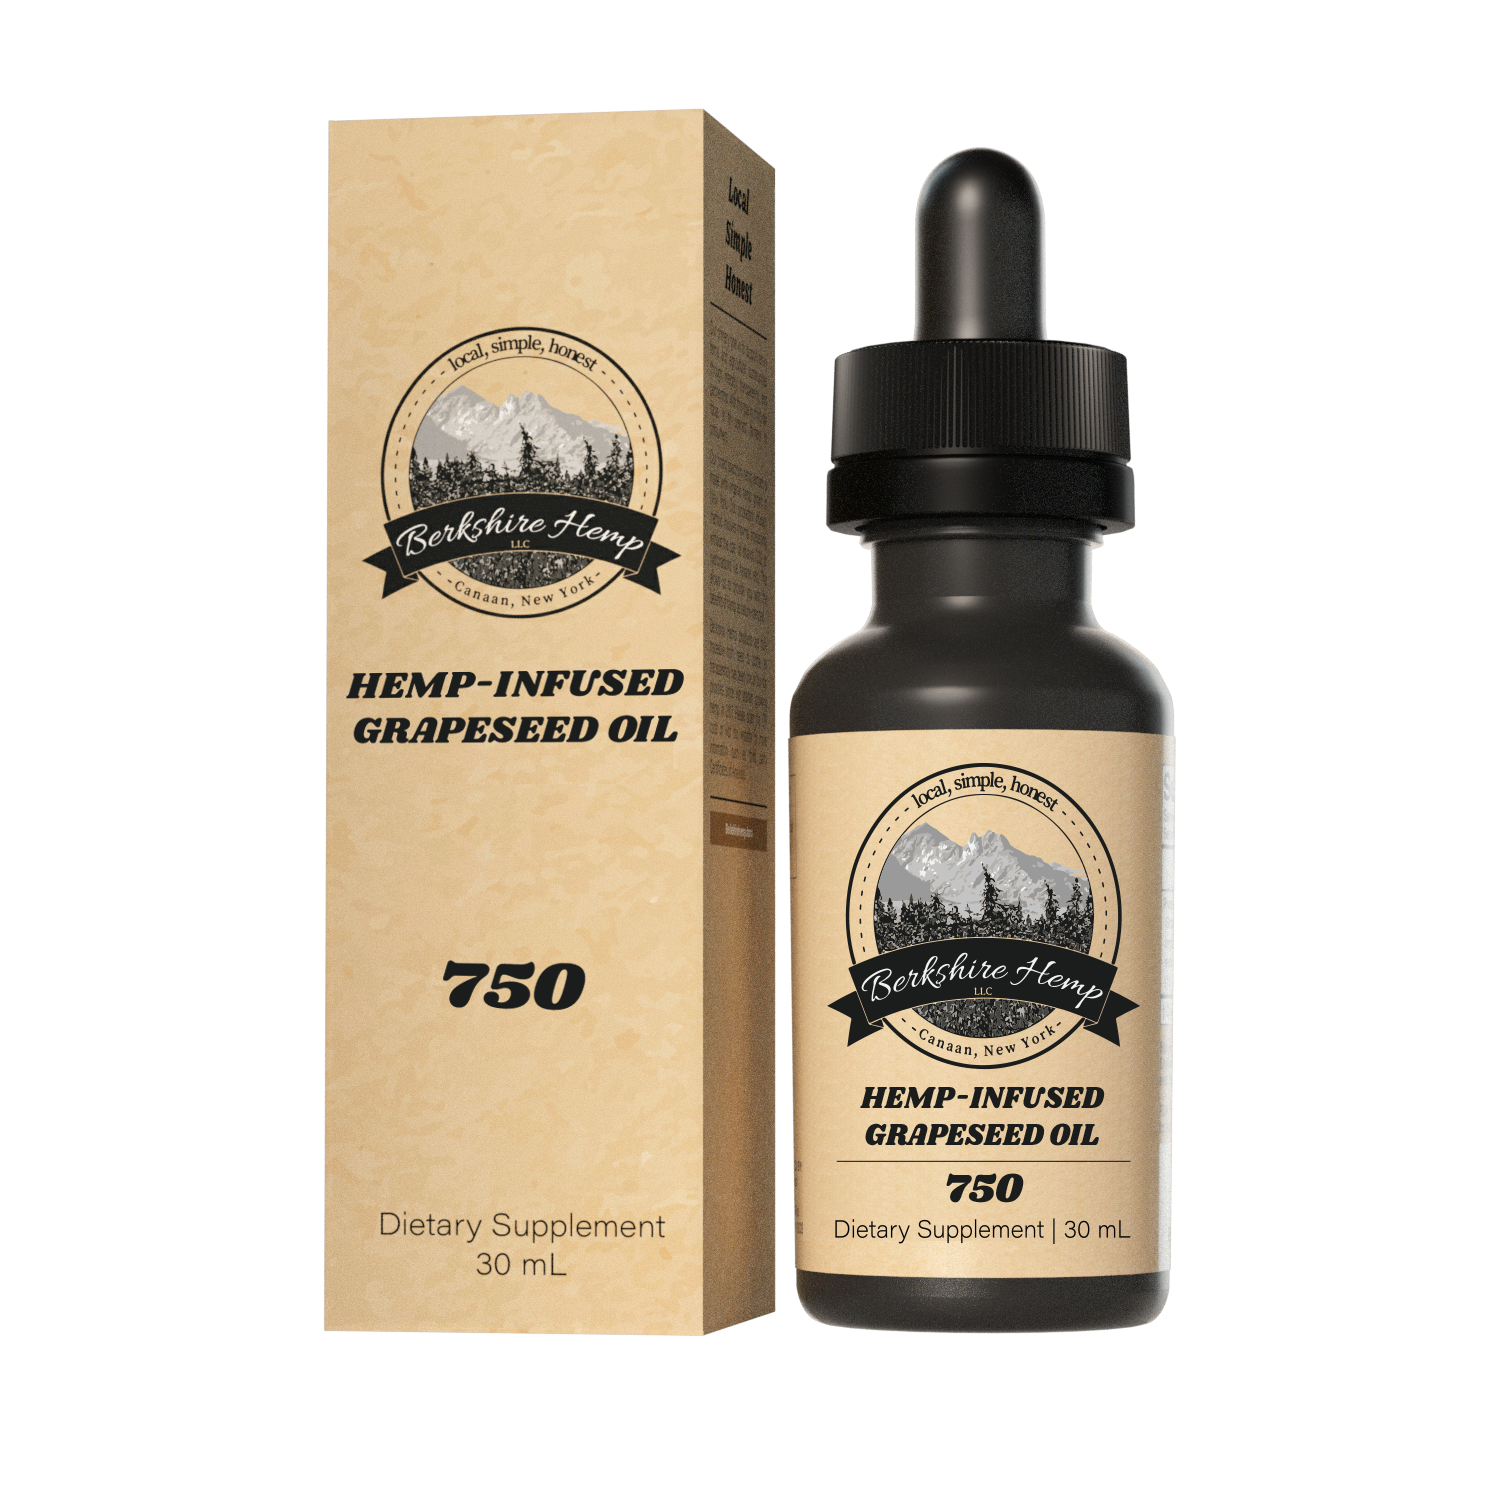 Hemp Infused Grapeseed Oil 750 - 30 mL